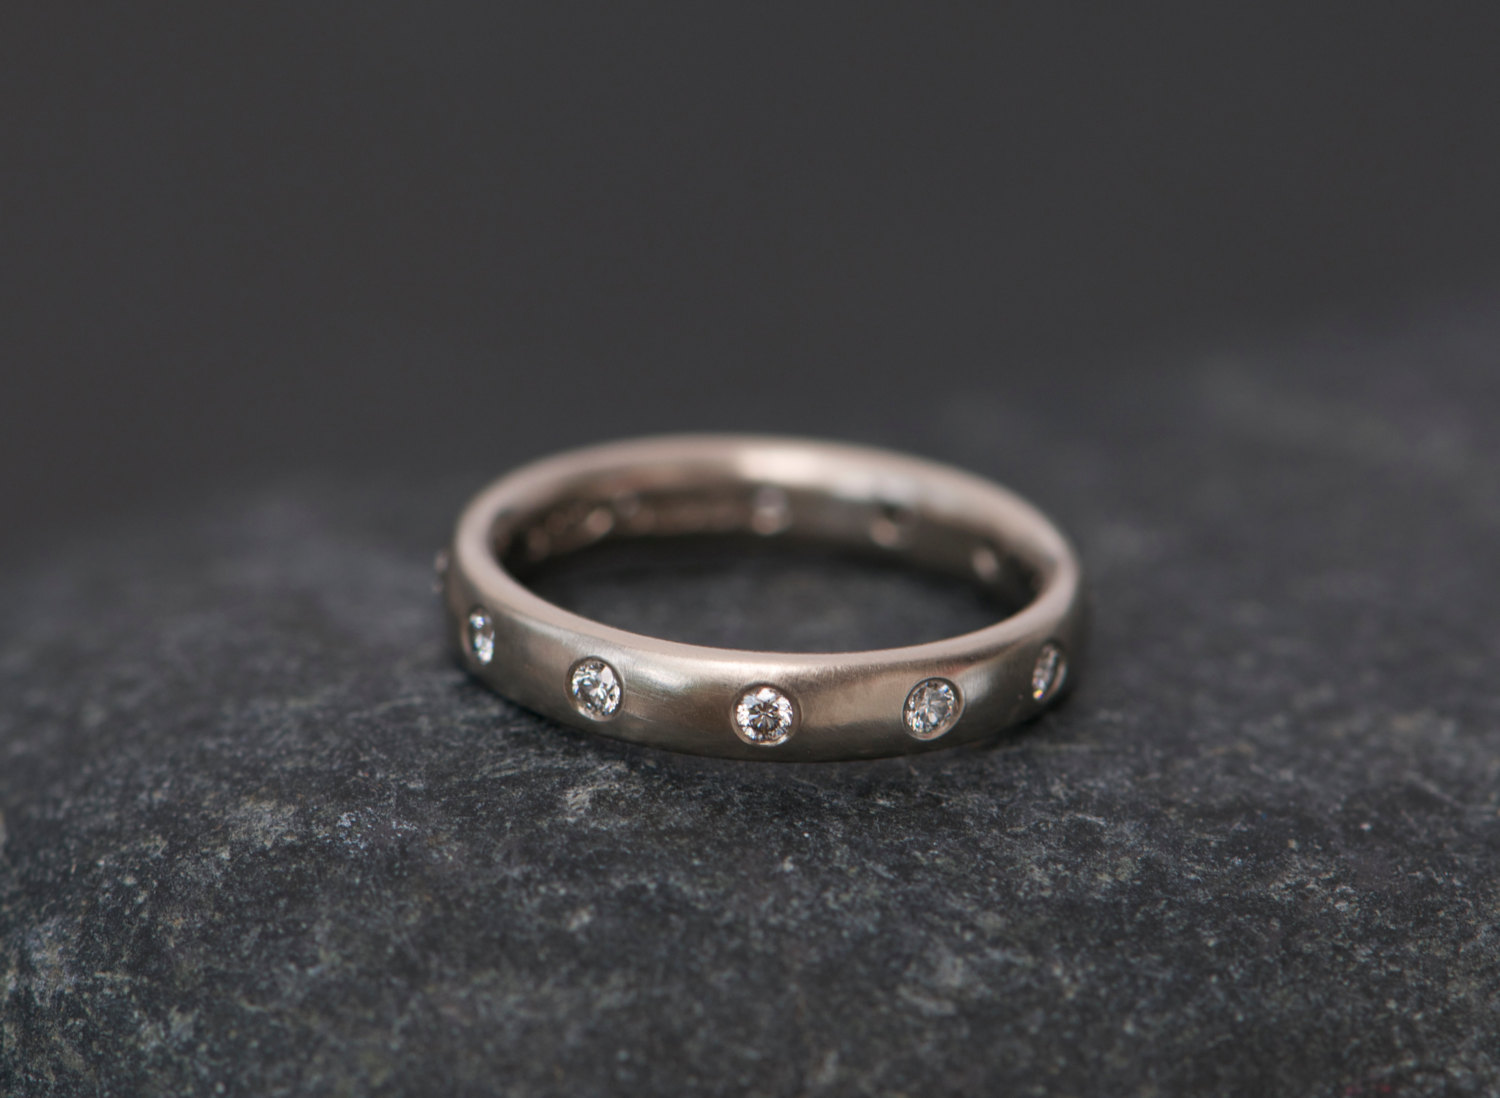 band ring silver sterling p pav eternity cubic in white gold sapphire amp bands plated over pave zirconia